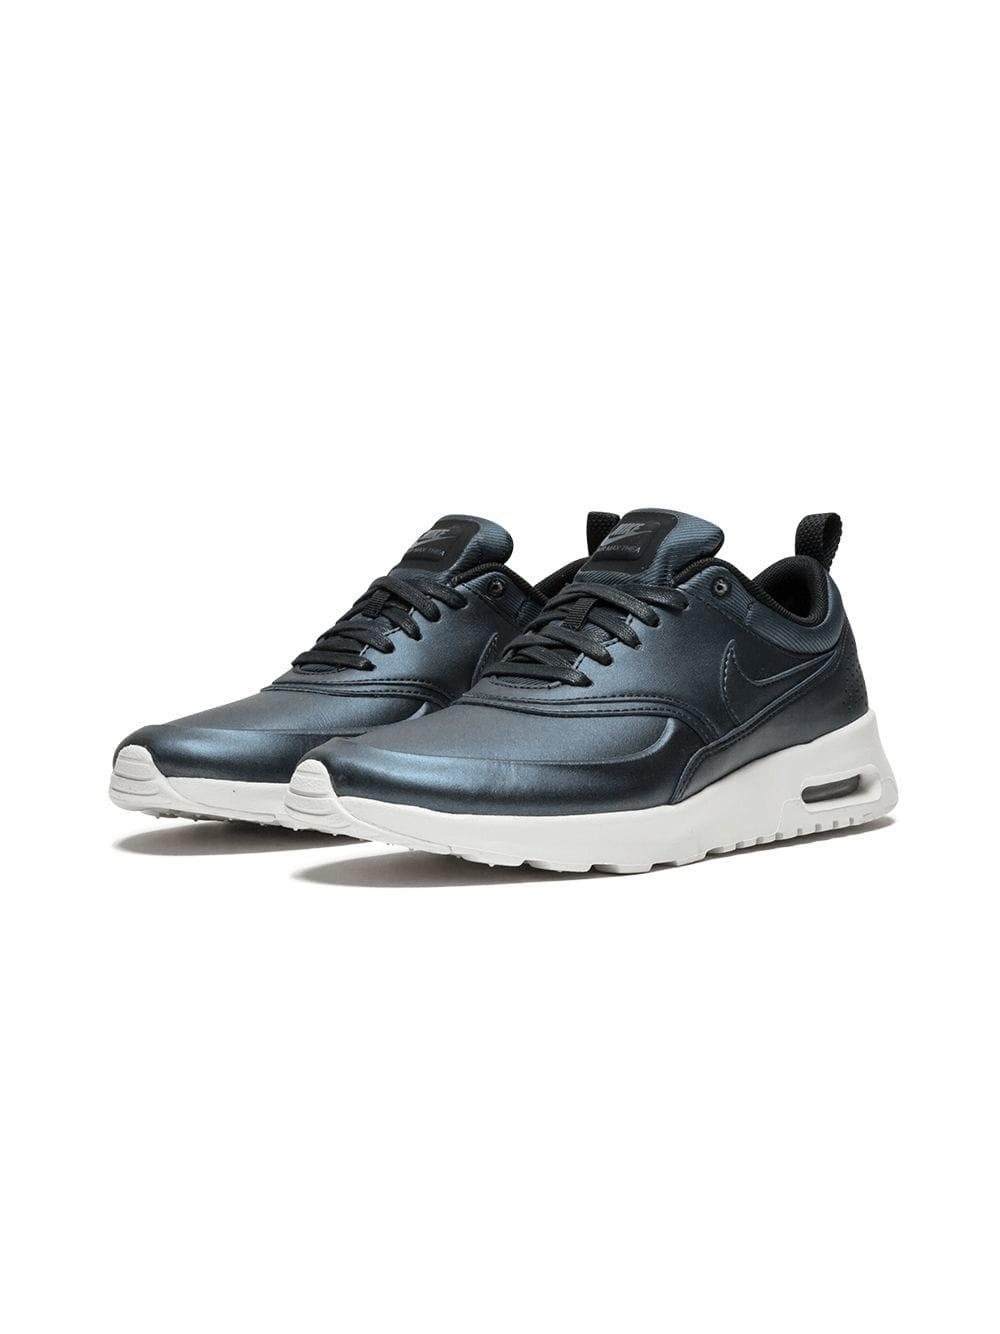 detailed look 2a44b ca71d Nike W Air Max Thea Se Sneakers in Blue - Lyst